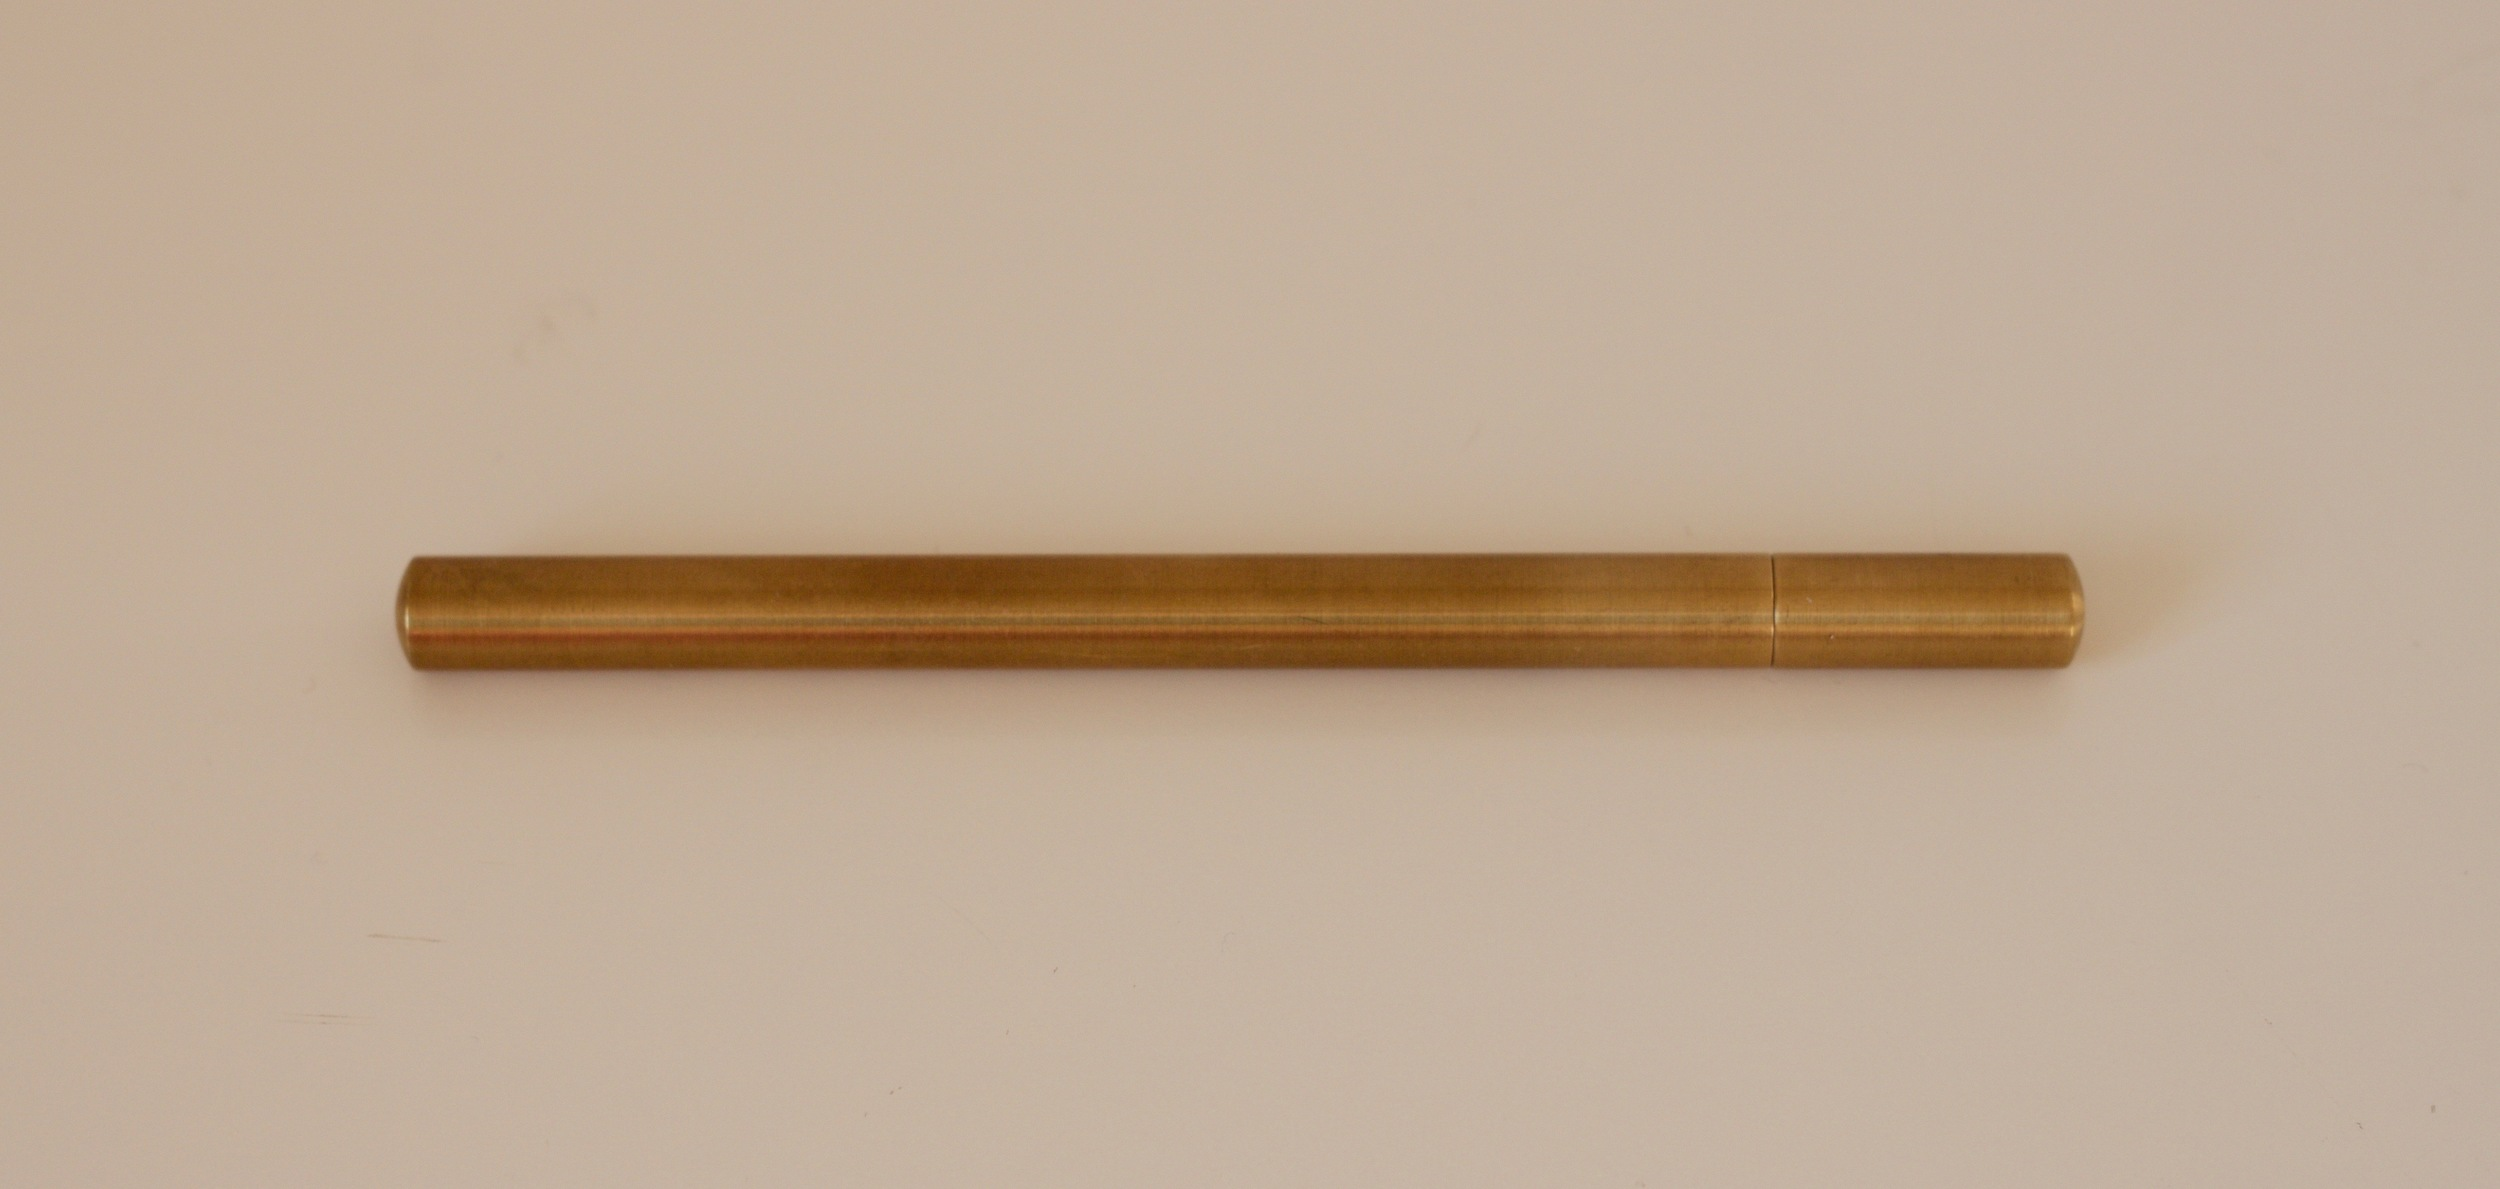 The Ateleia Brass Pen